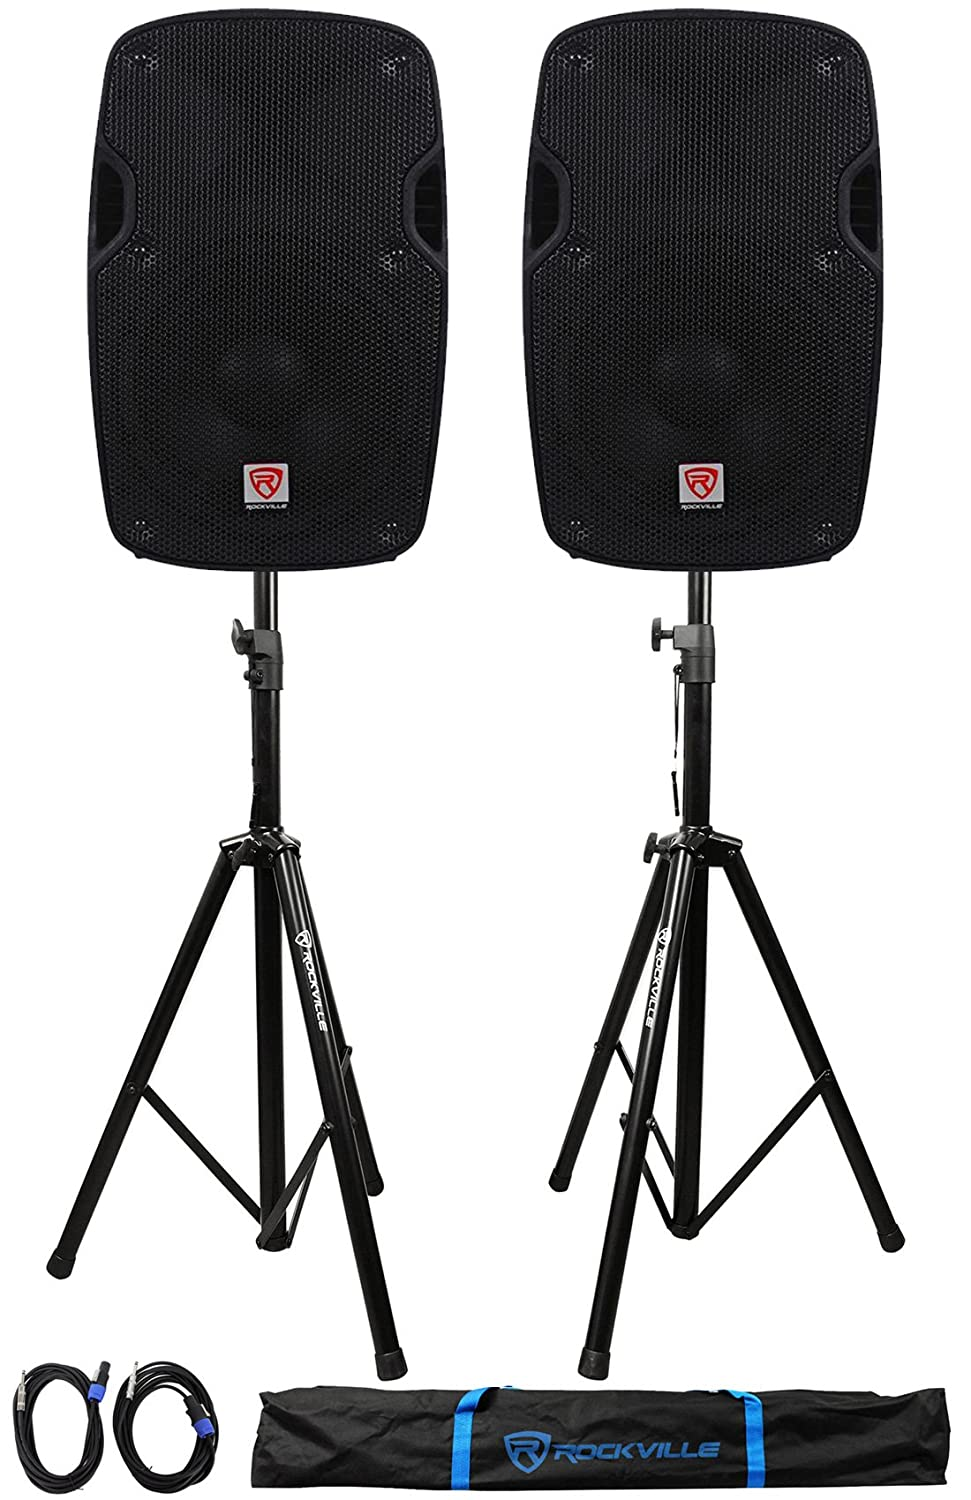 2) Rockville SPG88 8 Passive 800W DJ PA Speakers 8 Ohm 2) Stands+2) Cables+Case 4341197797